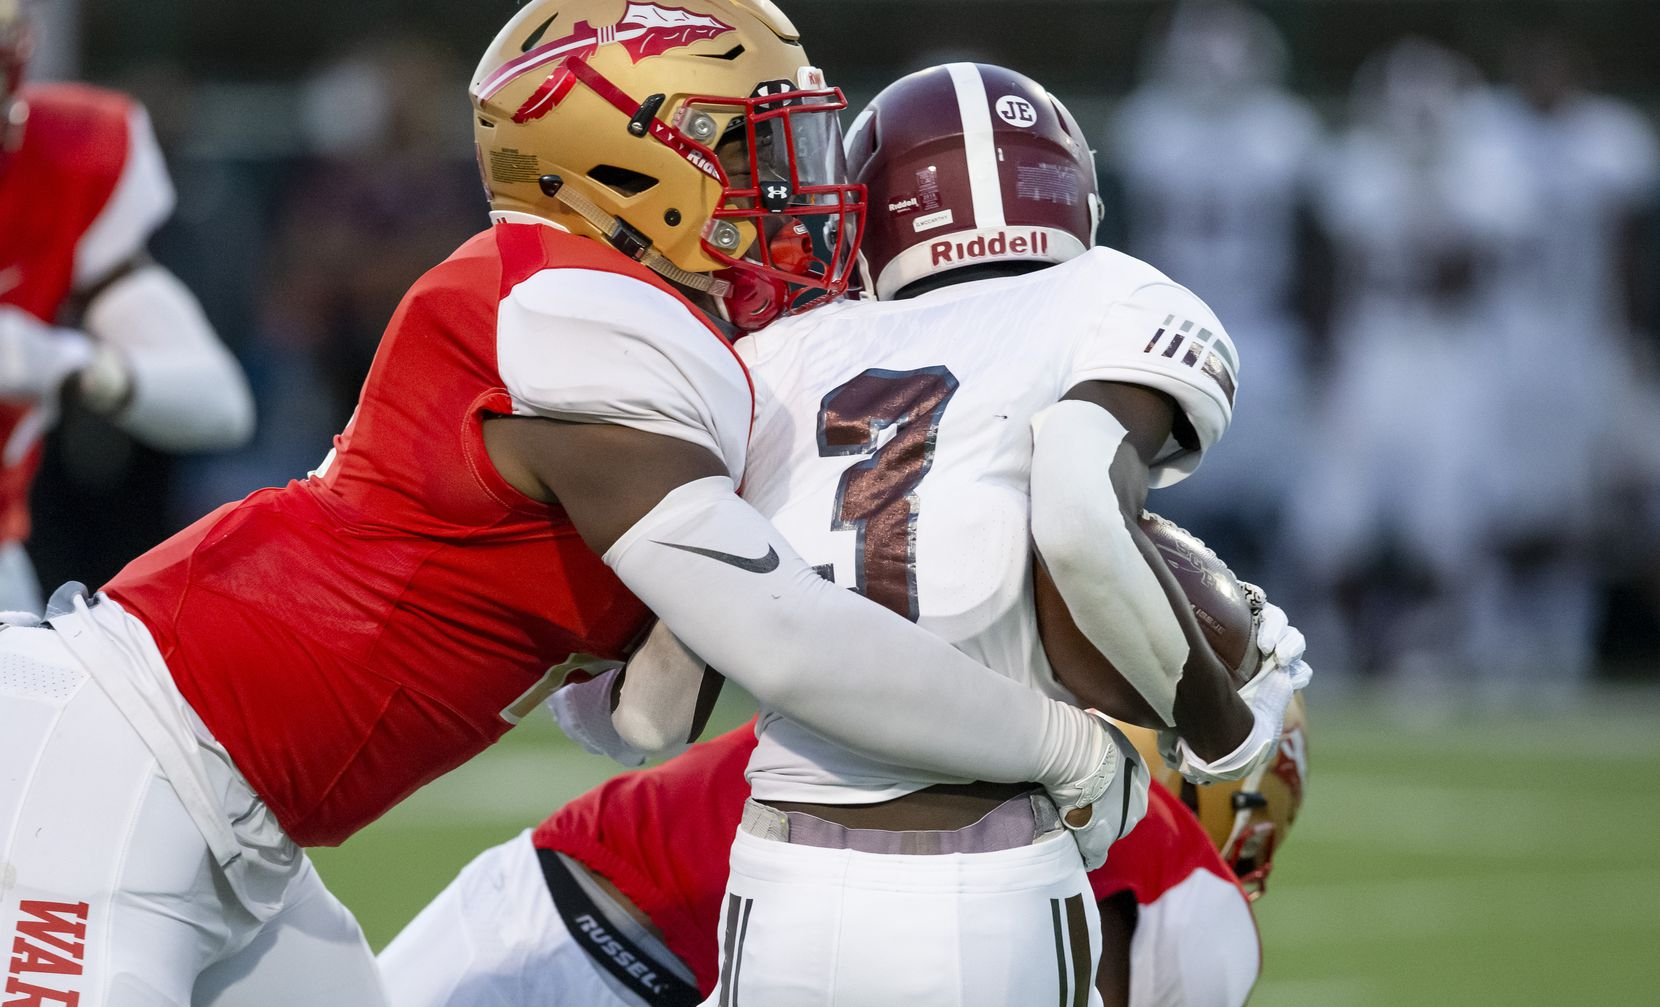 South Grand Prairie senior linebacker Marsel McDuffie (2), rights tackles Mesquite junior wide receiver Gervin McCarthy (3) during the first half of a high school football game at the Gopher-Warrior Bowl in Grand Prairie, Thursday, October 1, 2020. (Brandon Wade/Special Contributor)